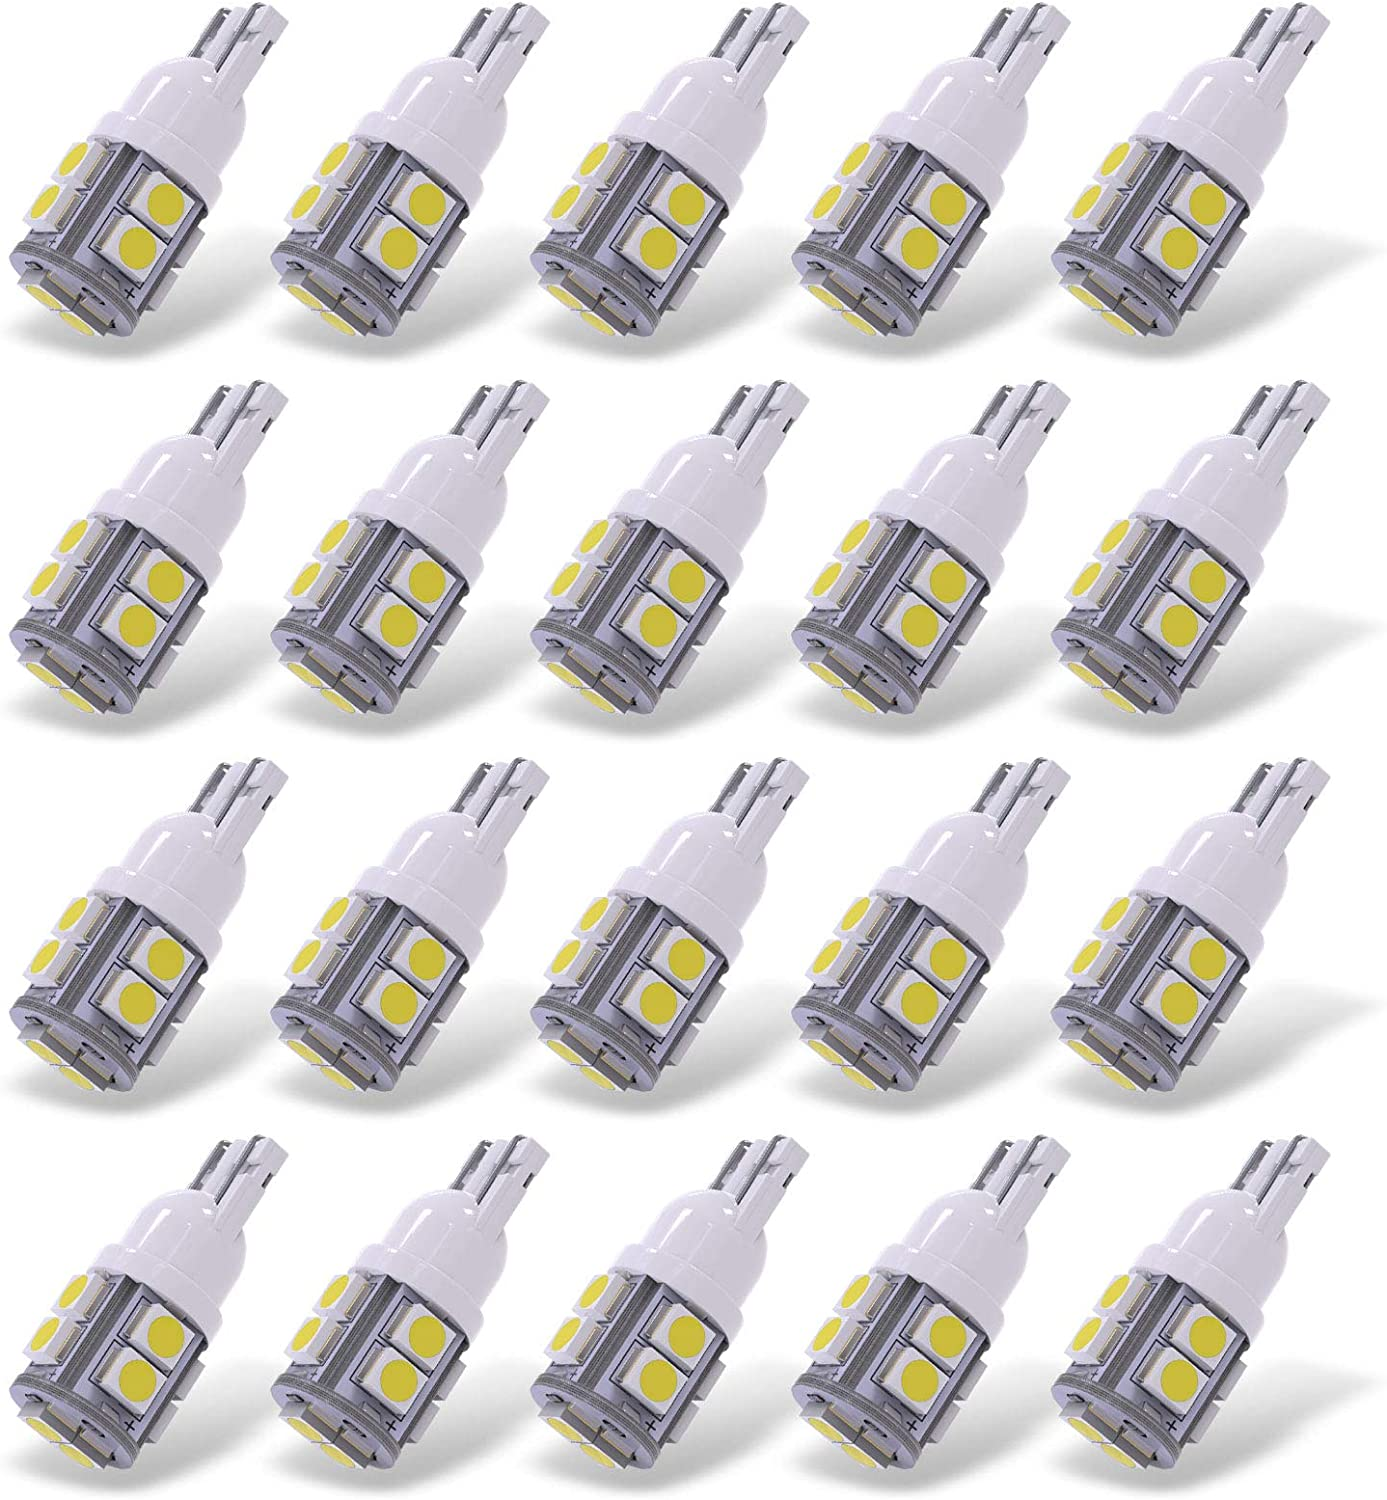 2X USA WHITE LED SMD T10 194 168 921 2825 W5W WEDGE BULBS WITH GLASS REPLACEMENT